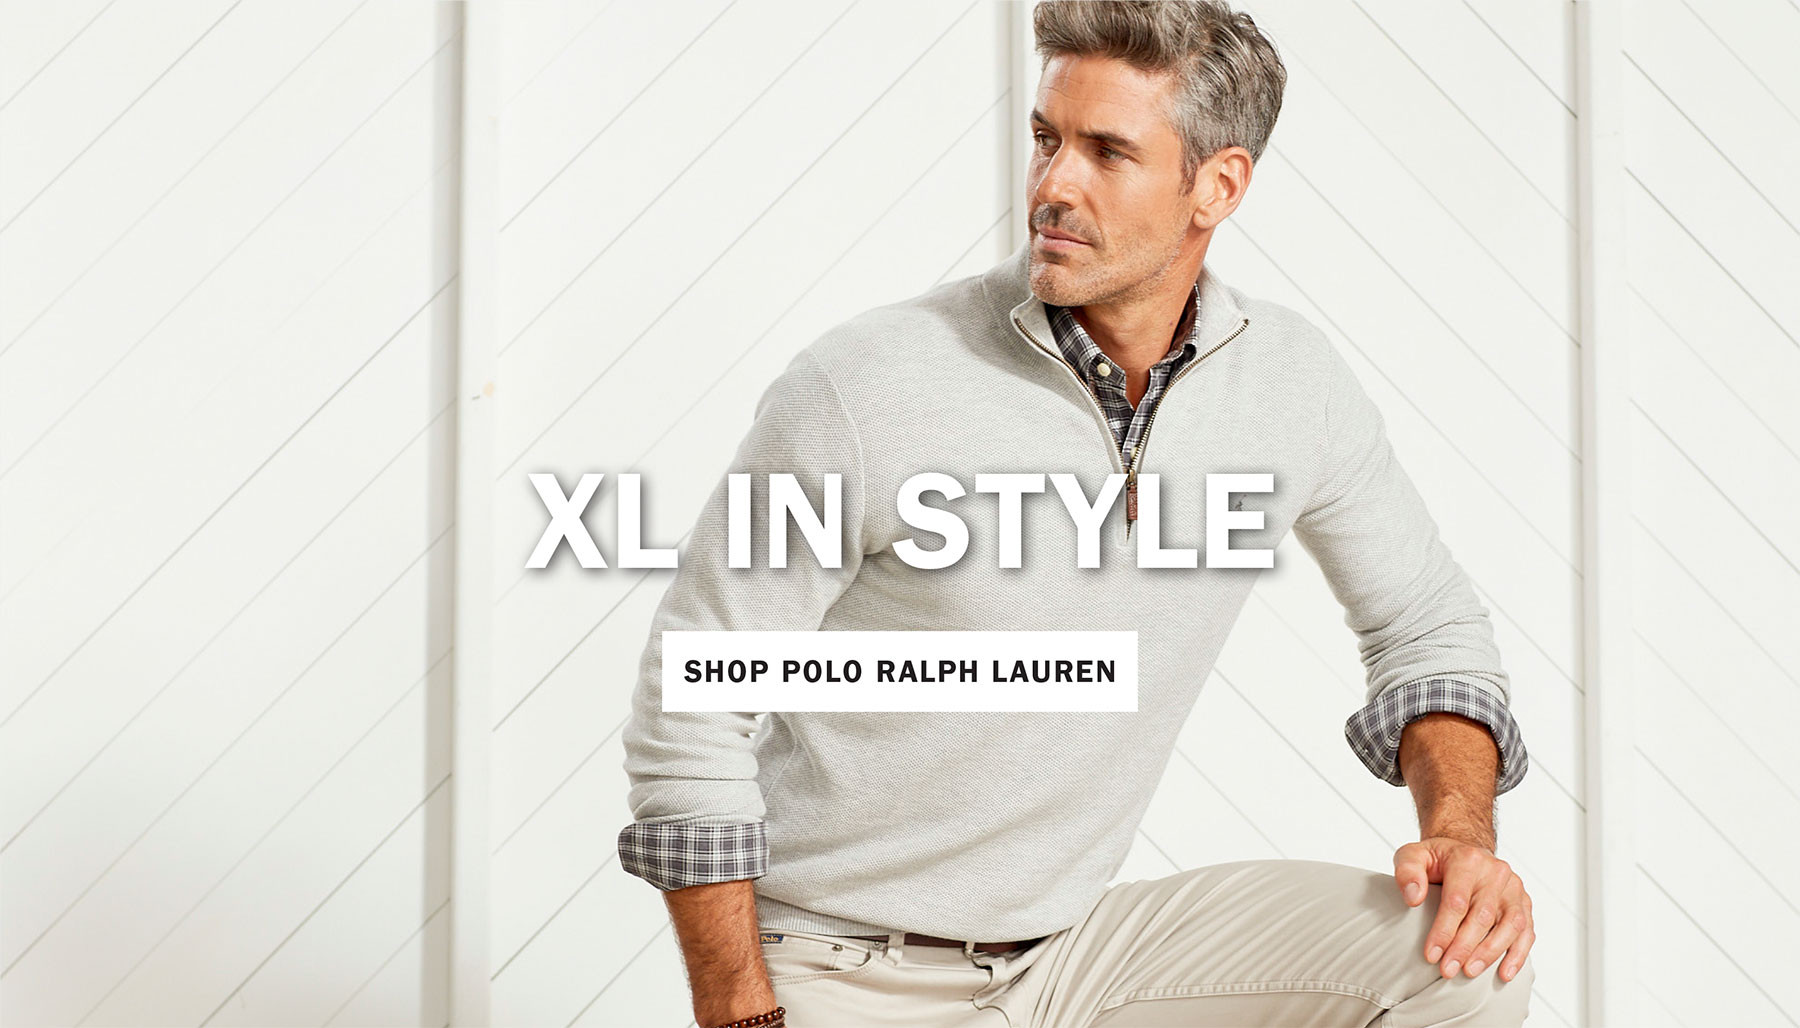 XL IN STLYE | POLO RALPH LAUREN